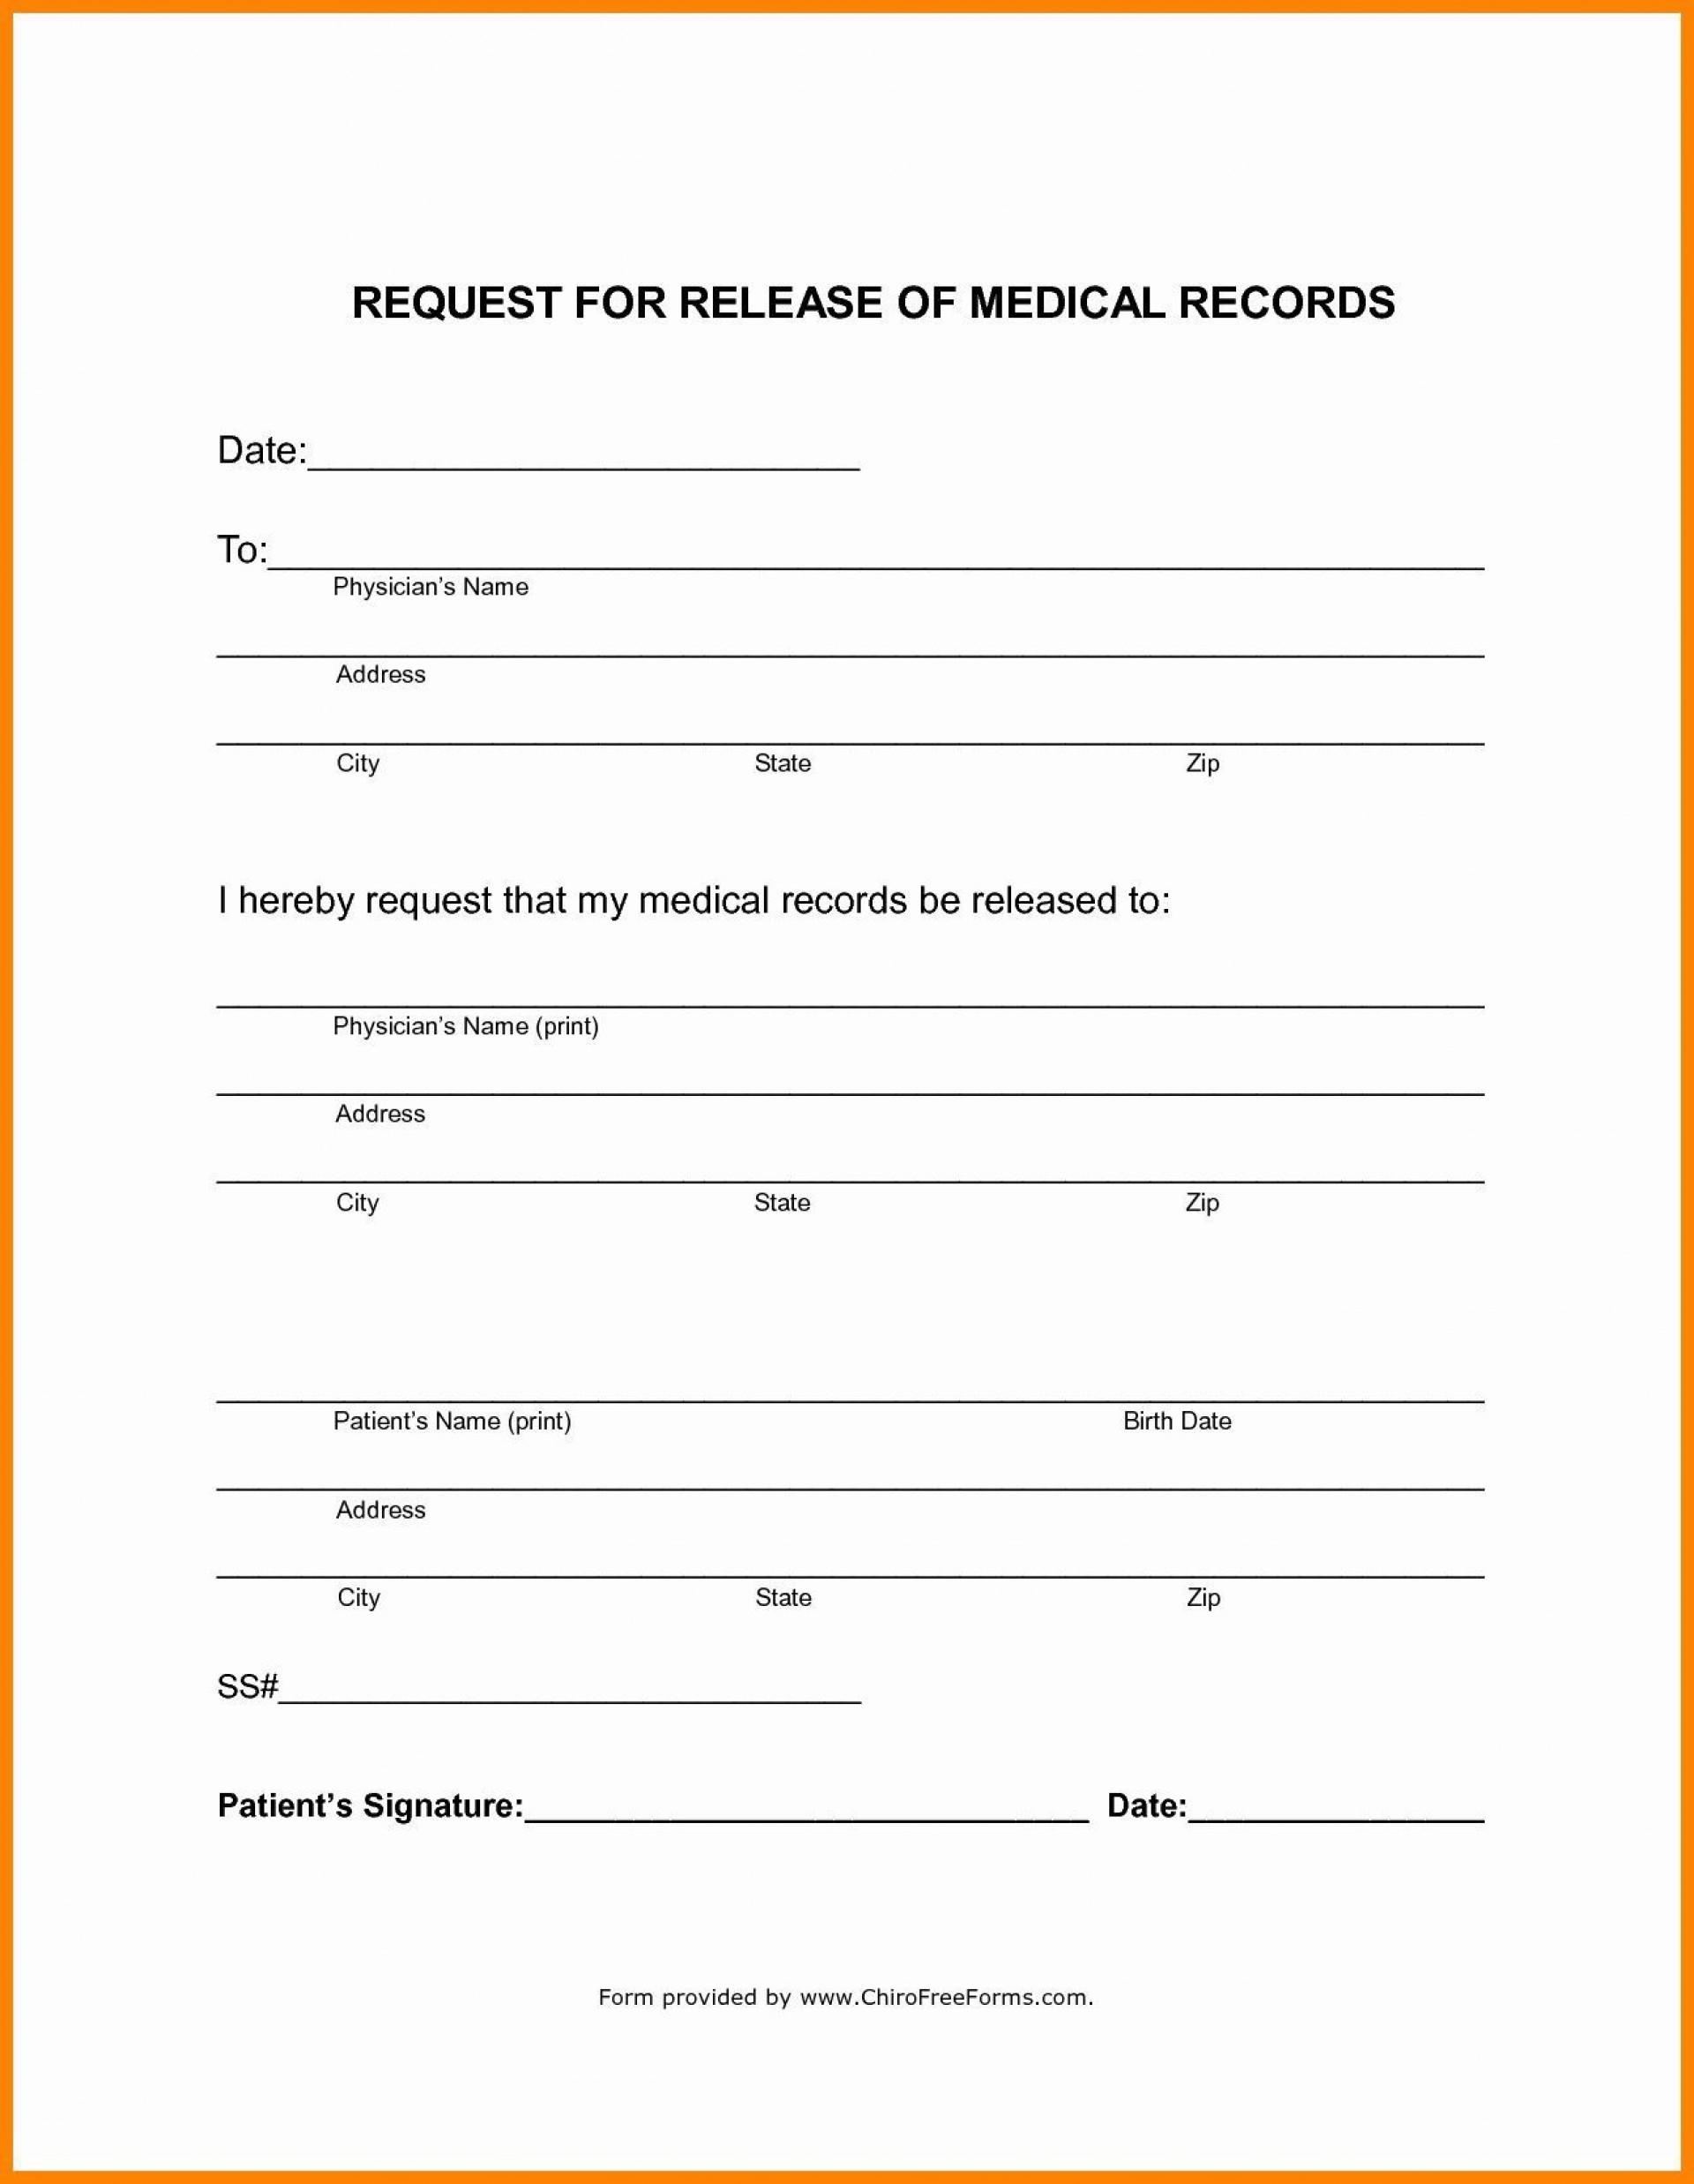 000 Singular Medical Record Request Form Template Concept  Free Release Authorization1920